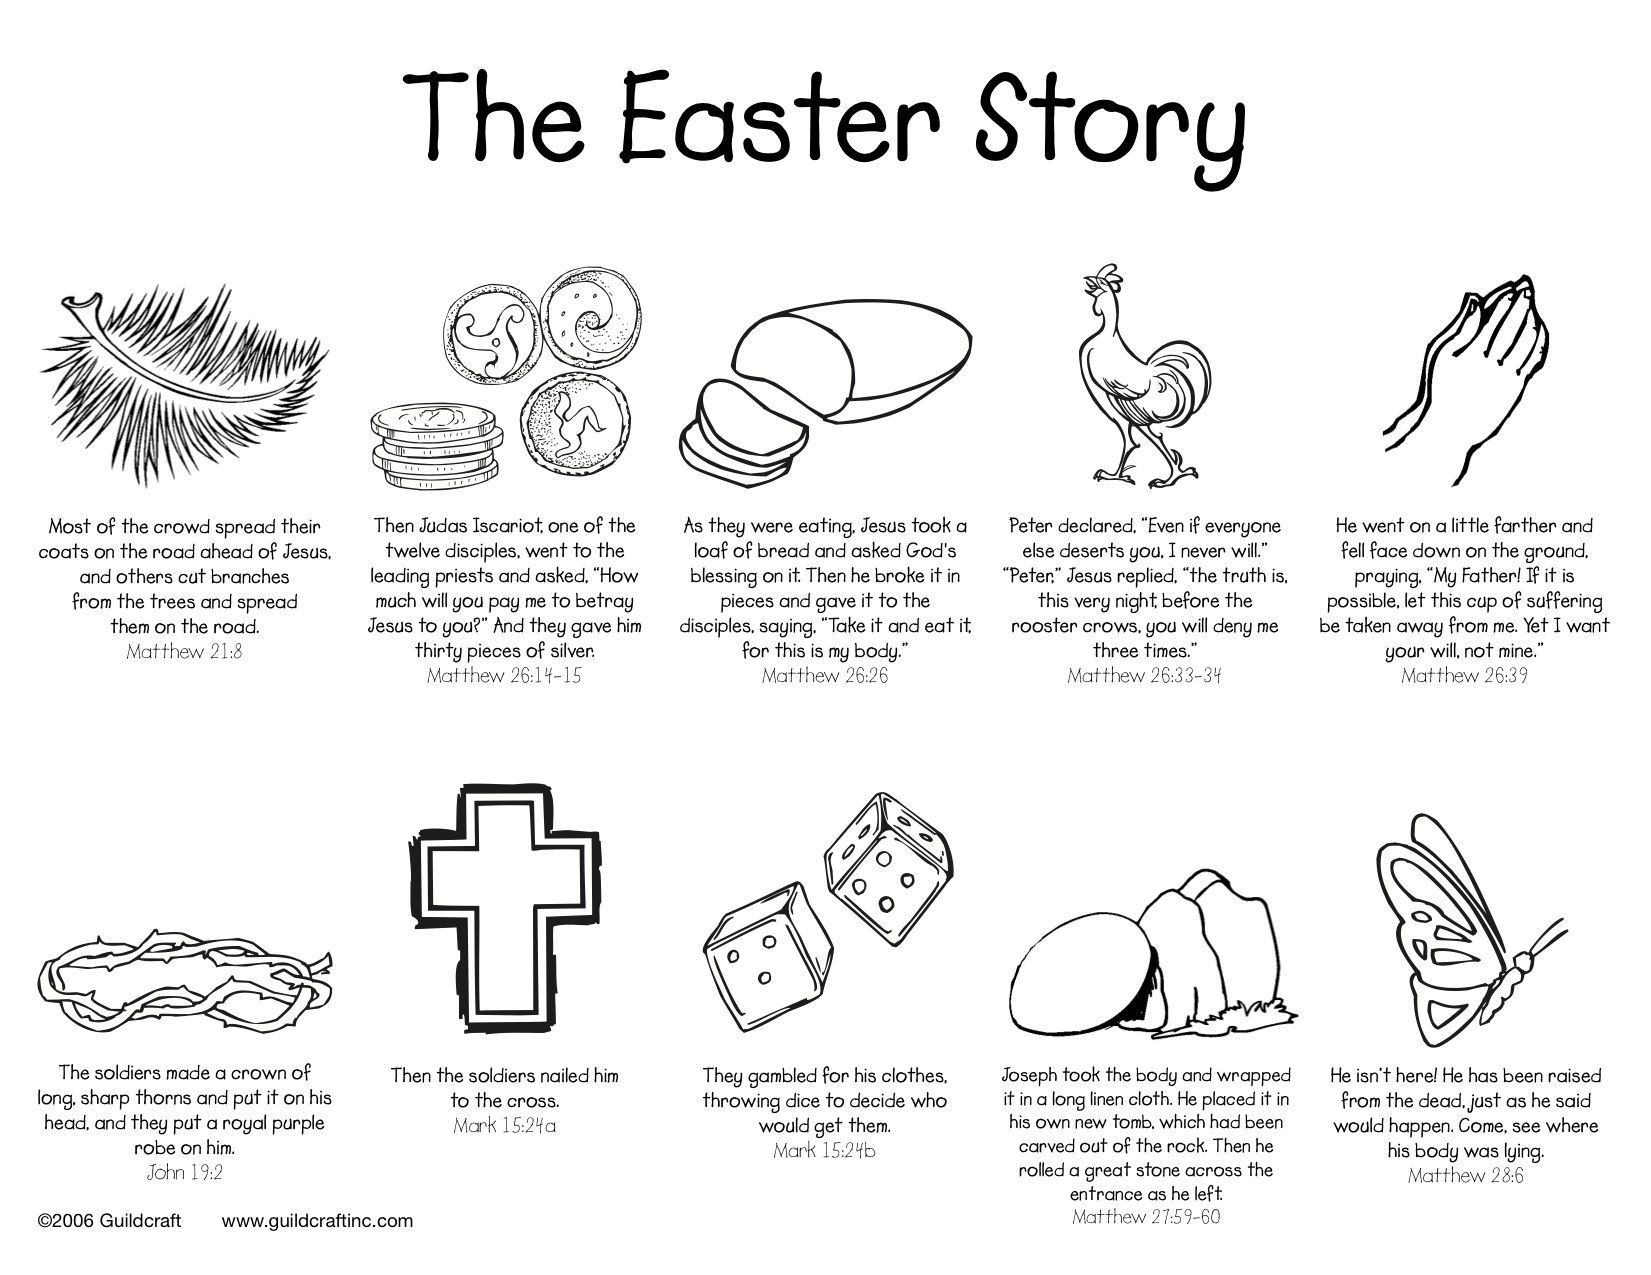 Childrens bible stories and coloring pages - Sunday School Valentines Day Coloring Pages Easter Story Coloring Page Guildcraft Arts Amp Crafts Blog